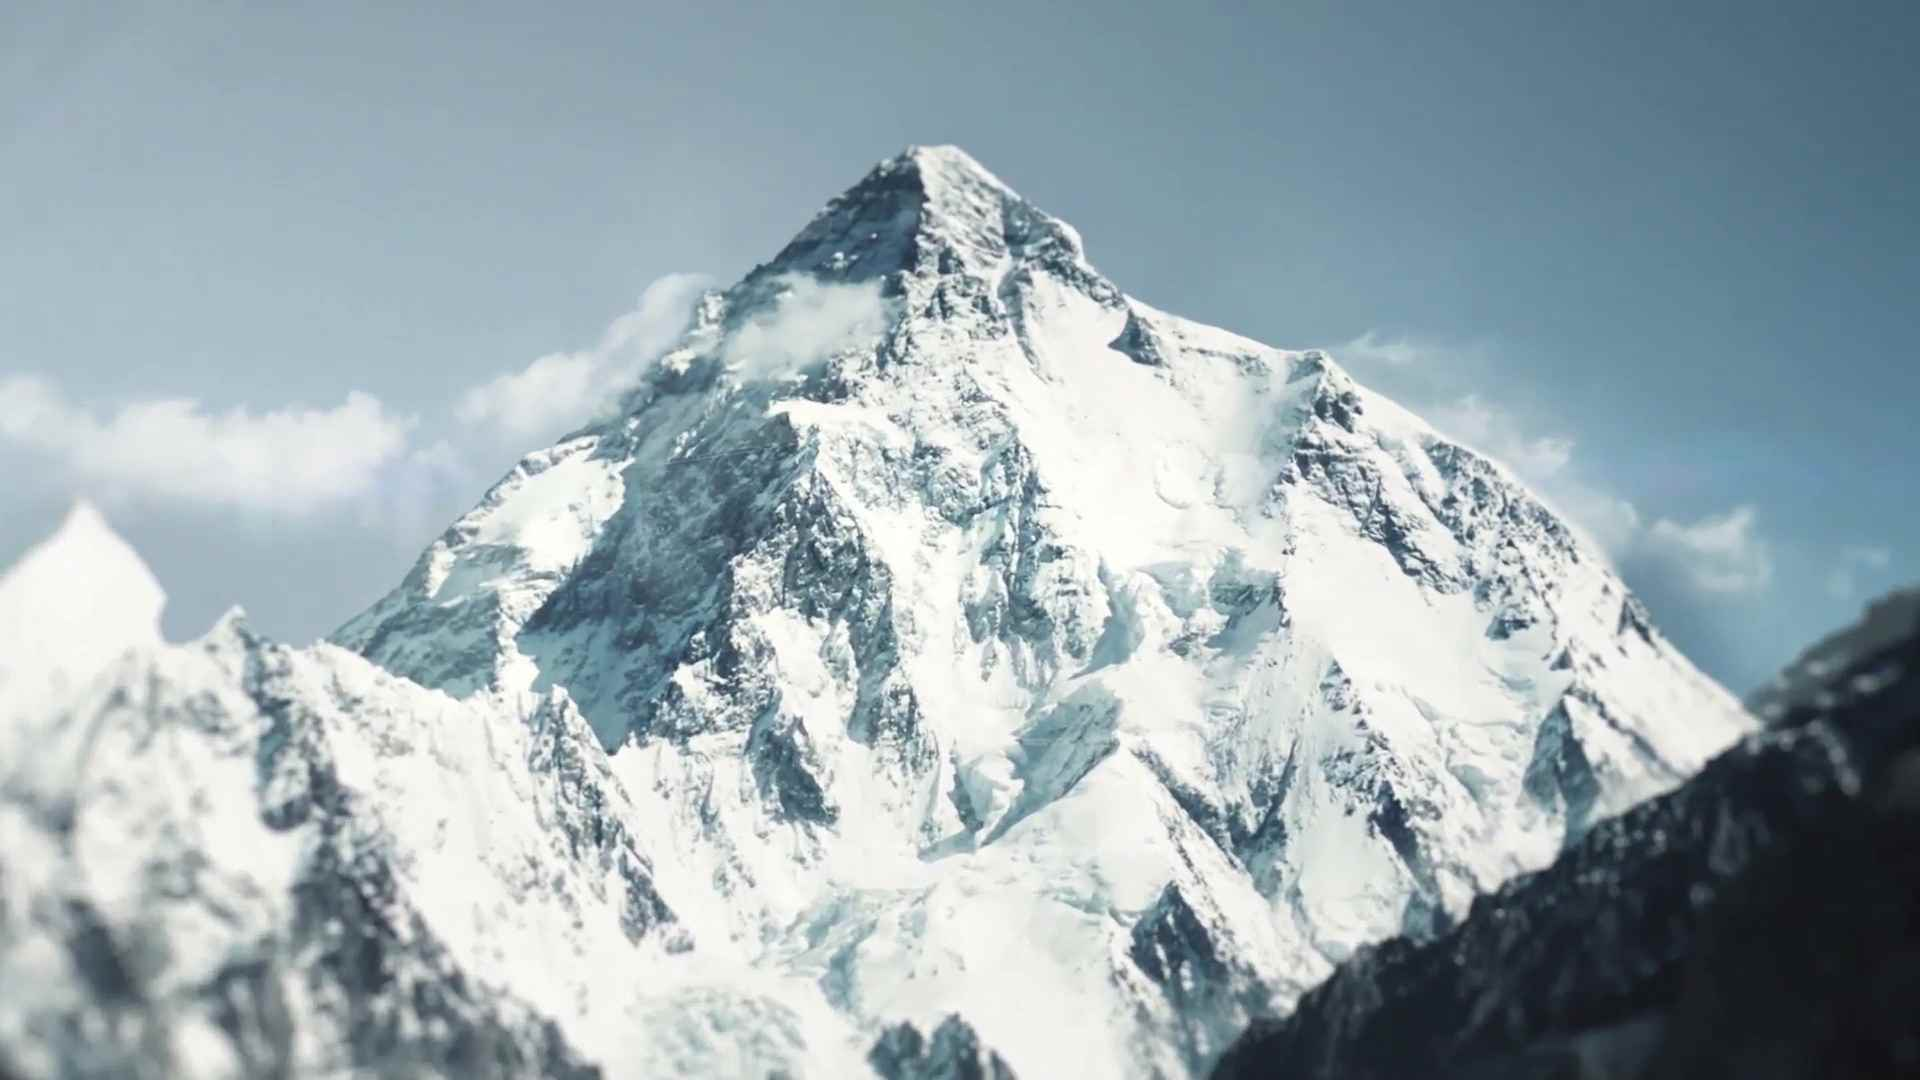 Travel and Summit K2 with Chkar Travel Guide